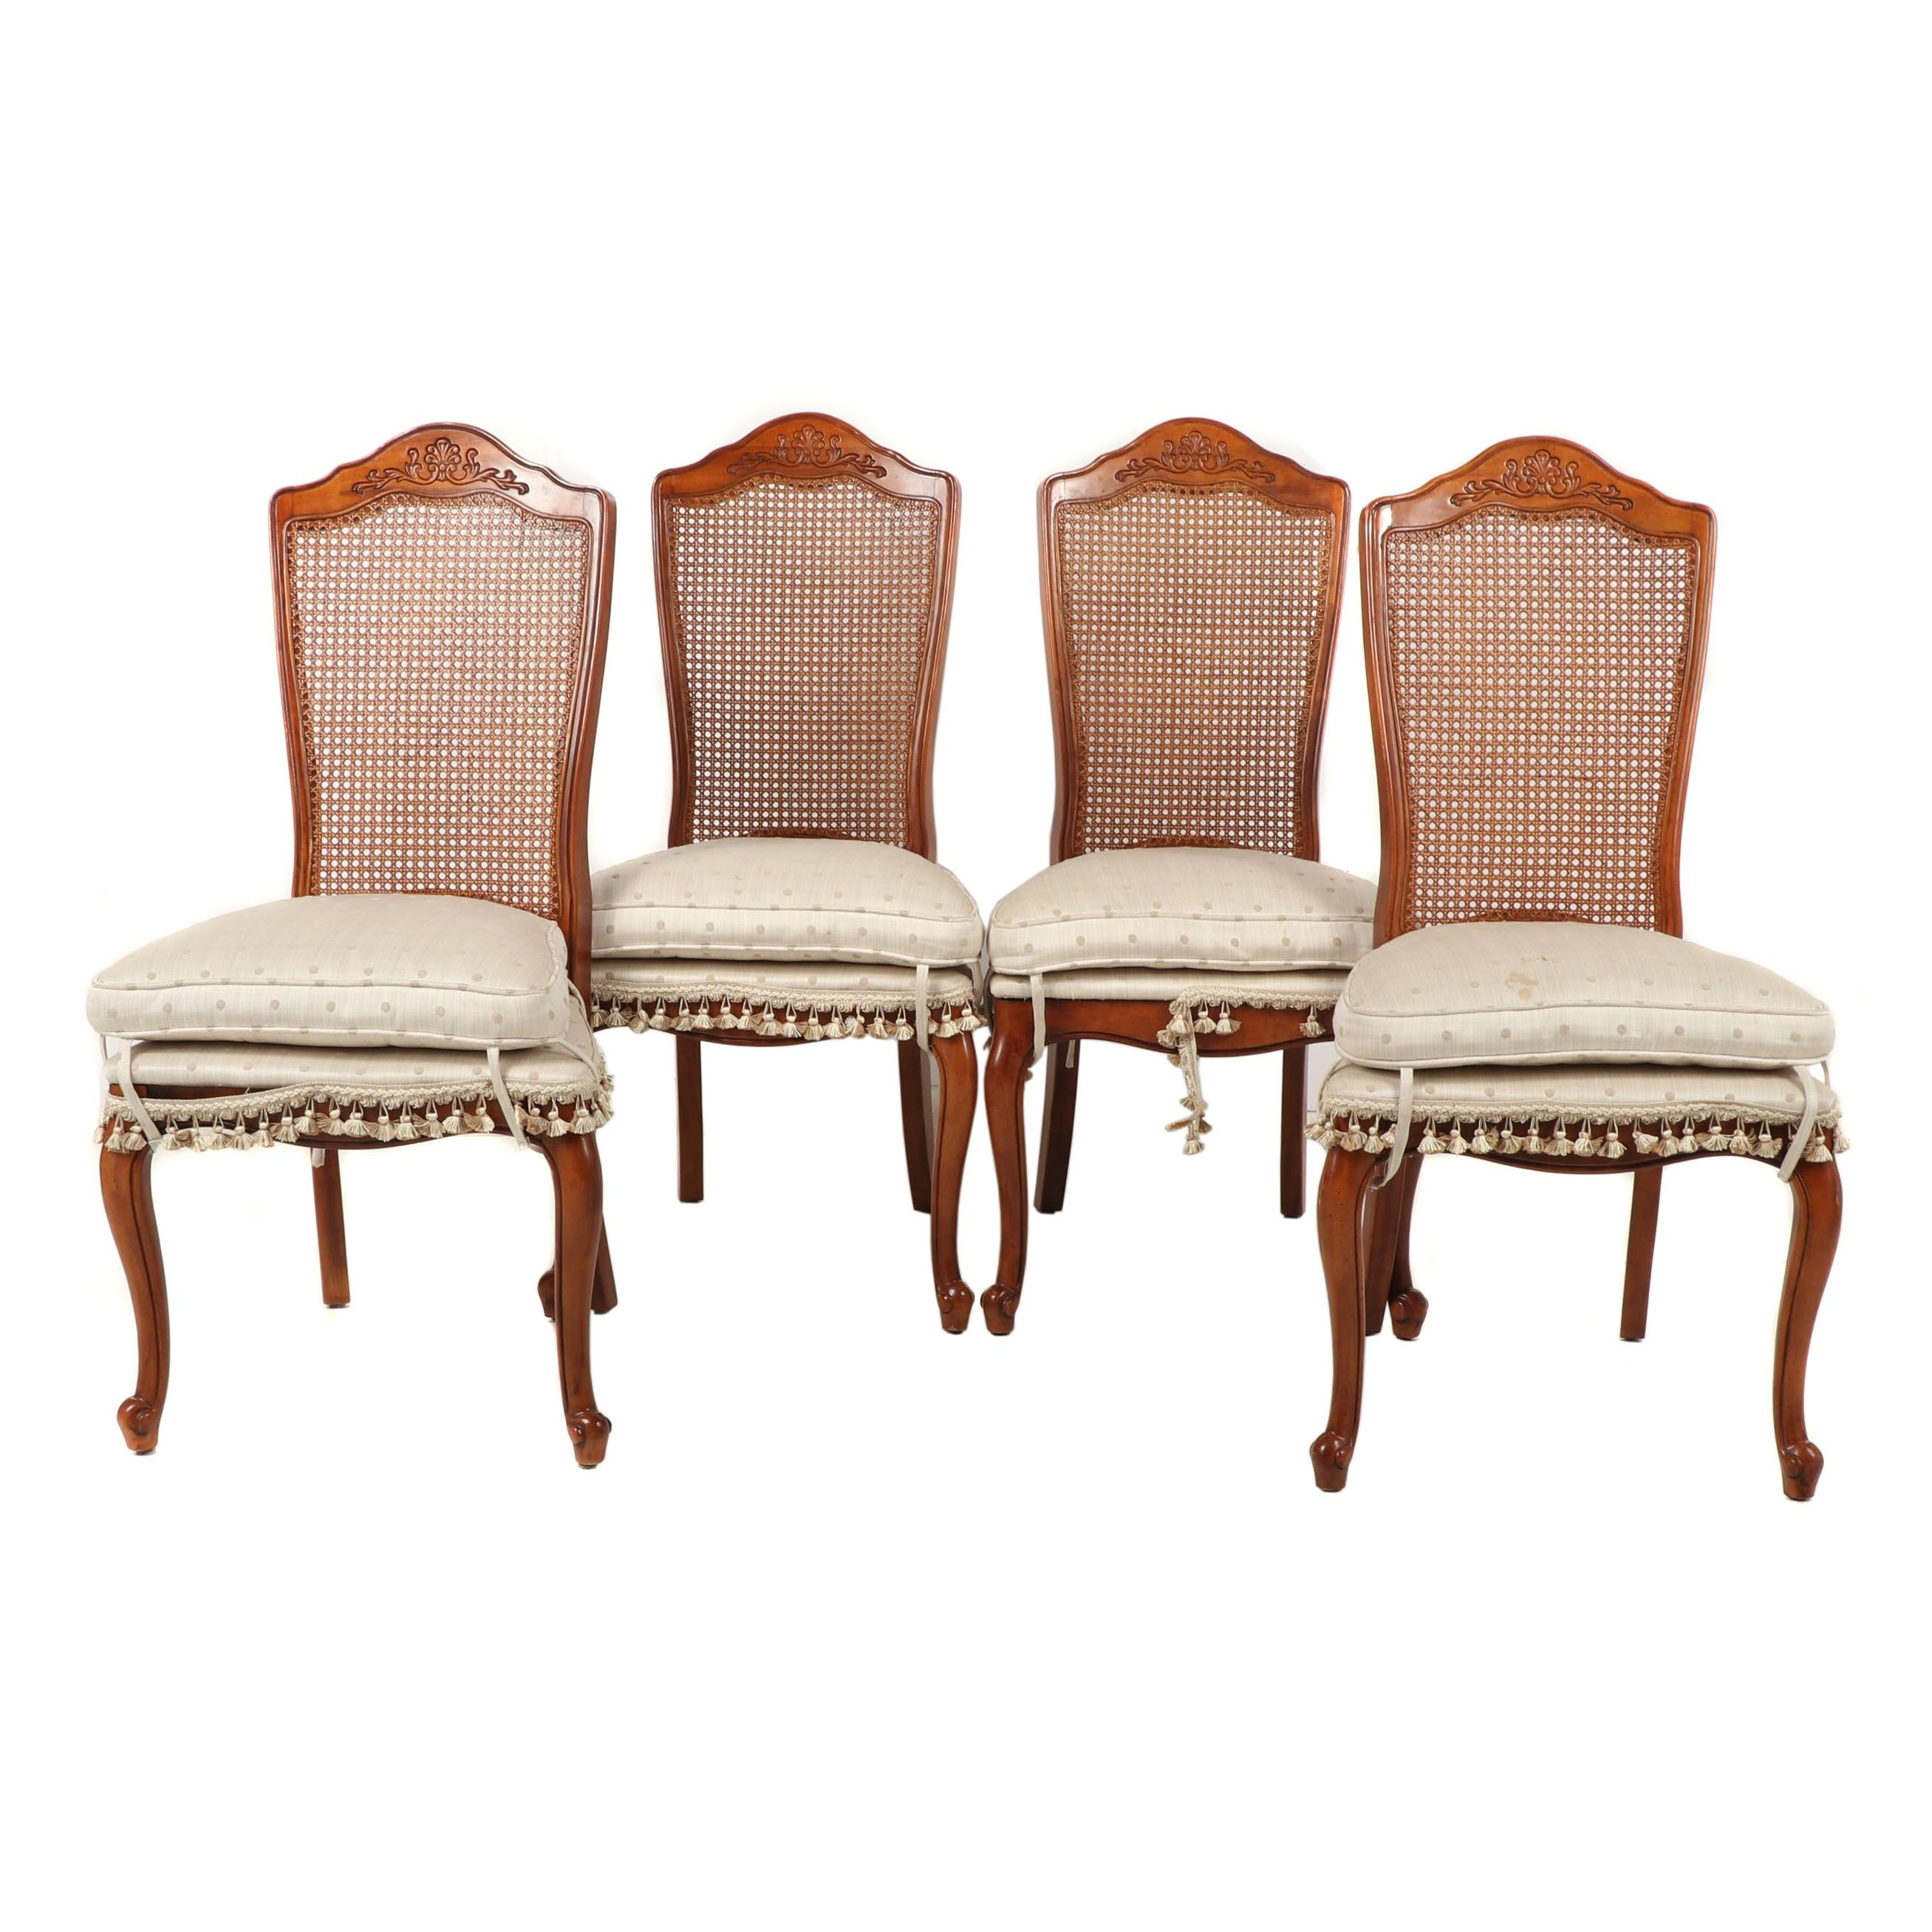 Rococo Style Wooden Cane Back Side Chairs, Contemporary